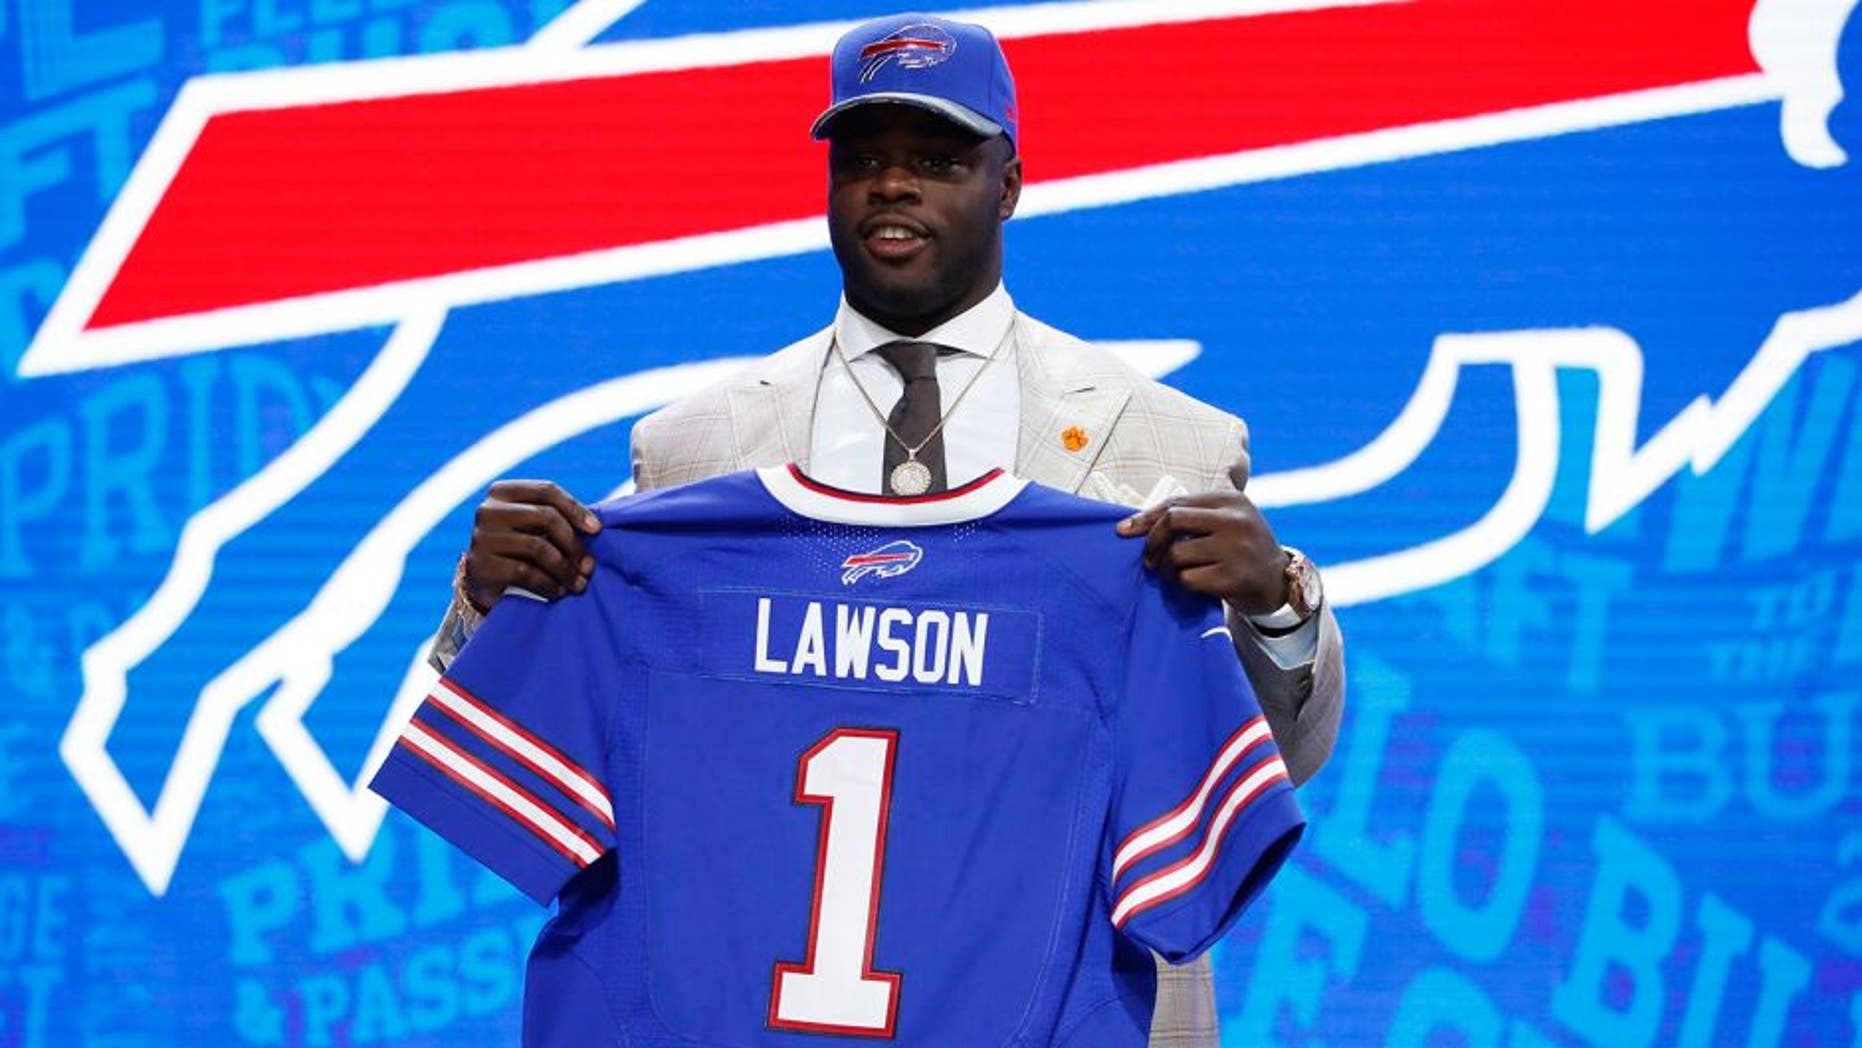 Apr 28, 2016; Chicago, IL, USA; Shaq Lawson (Clemson) after being selected by the Buffalo Bills as the number nineteen overall pick in the first round of the 2016 NFL Draft at Auditorium Theatre. Mandatory Credit: Kamil Krzaczynski-USA TODAY Sports